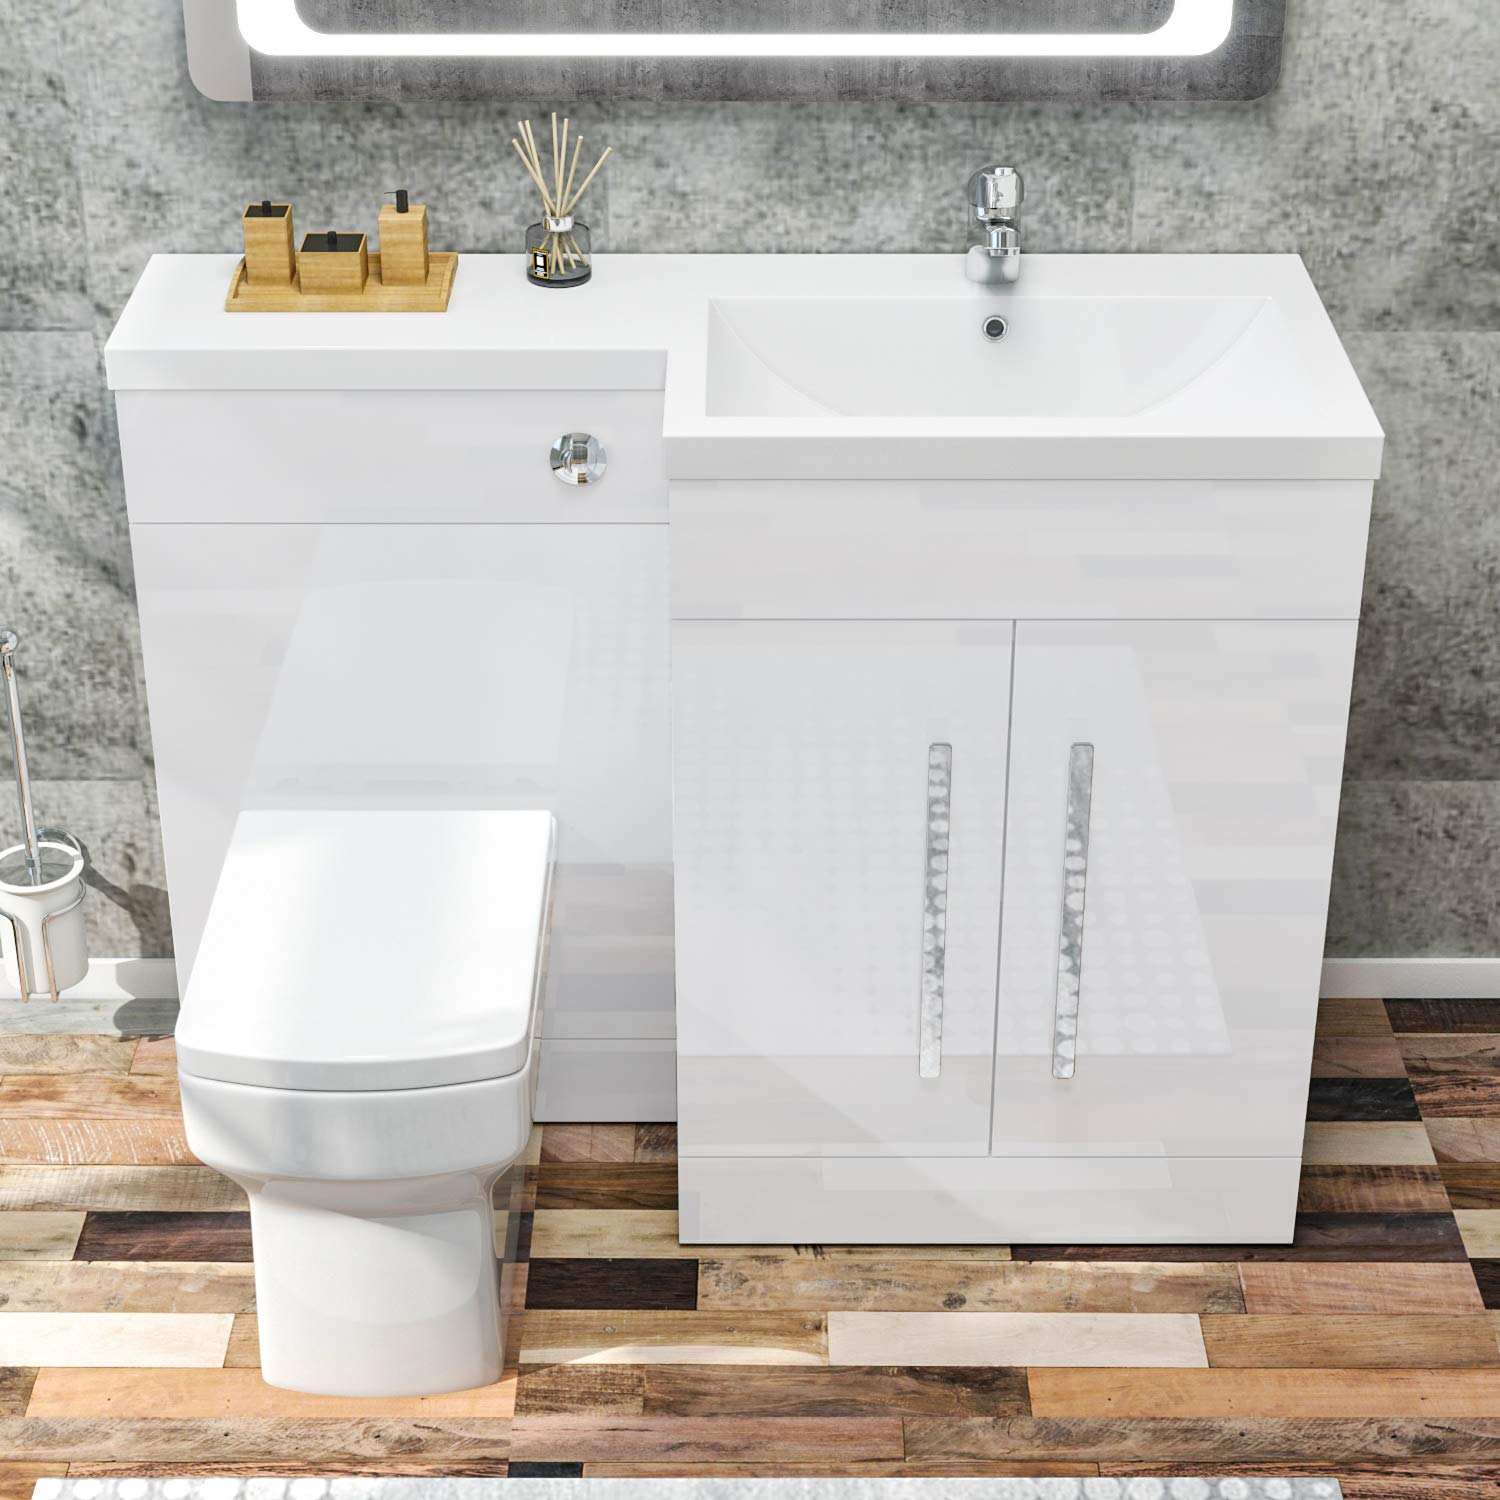 Elegant 1100mm L Shape Bathroom Vanity Sink Unit Furniture Storage Right Hand High Gloss White Vanity Unit Basin Ceramic Square Toilet With Concealed Cistern Buy Online In Antigua And Barbuda At